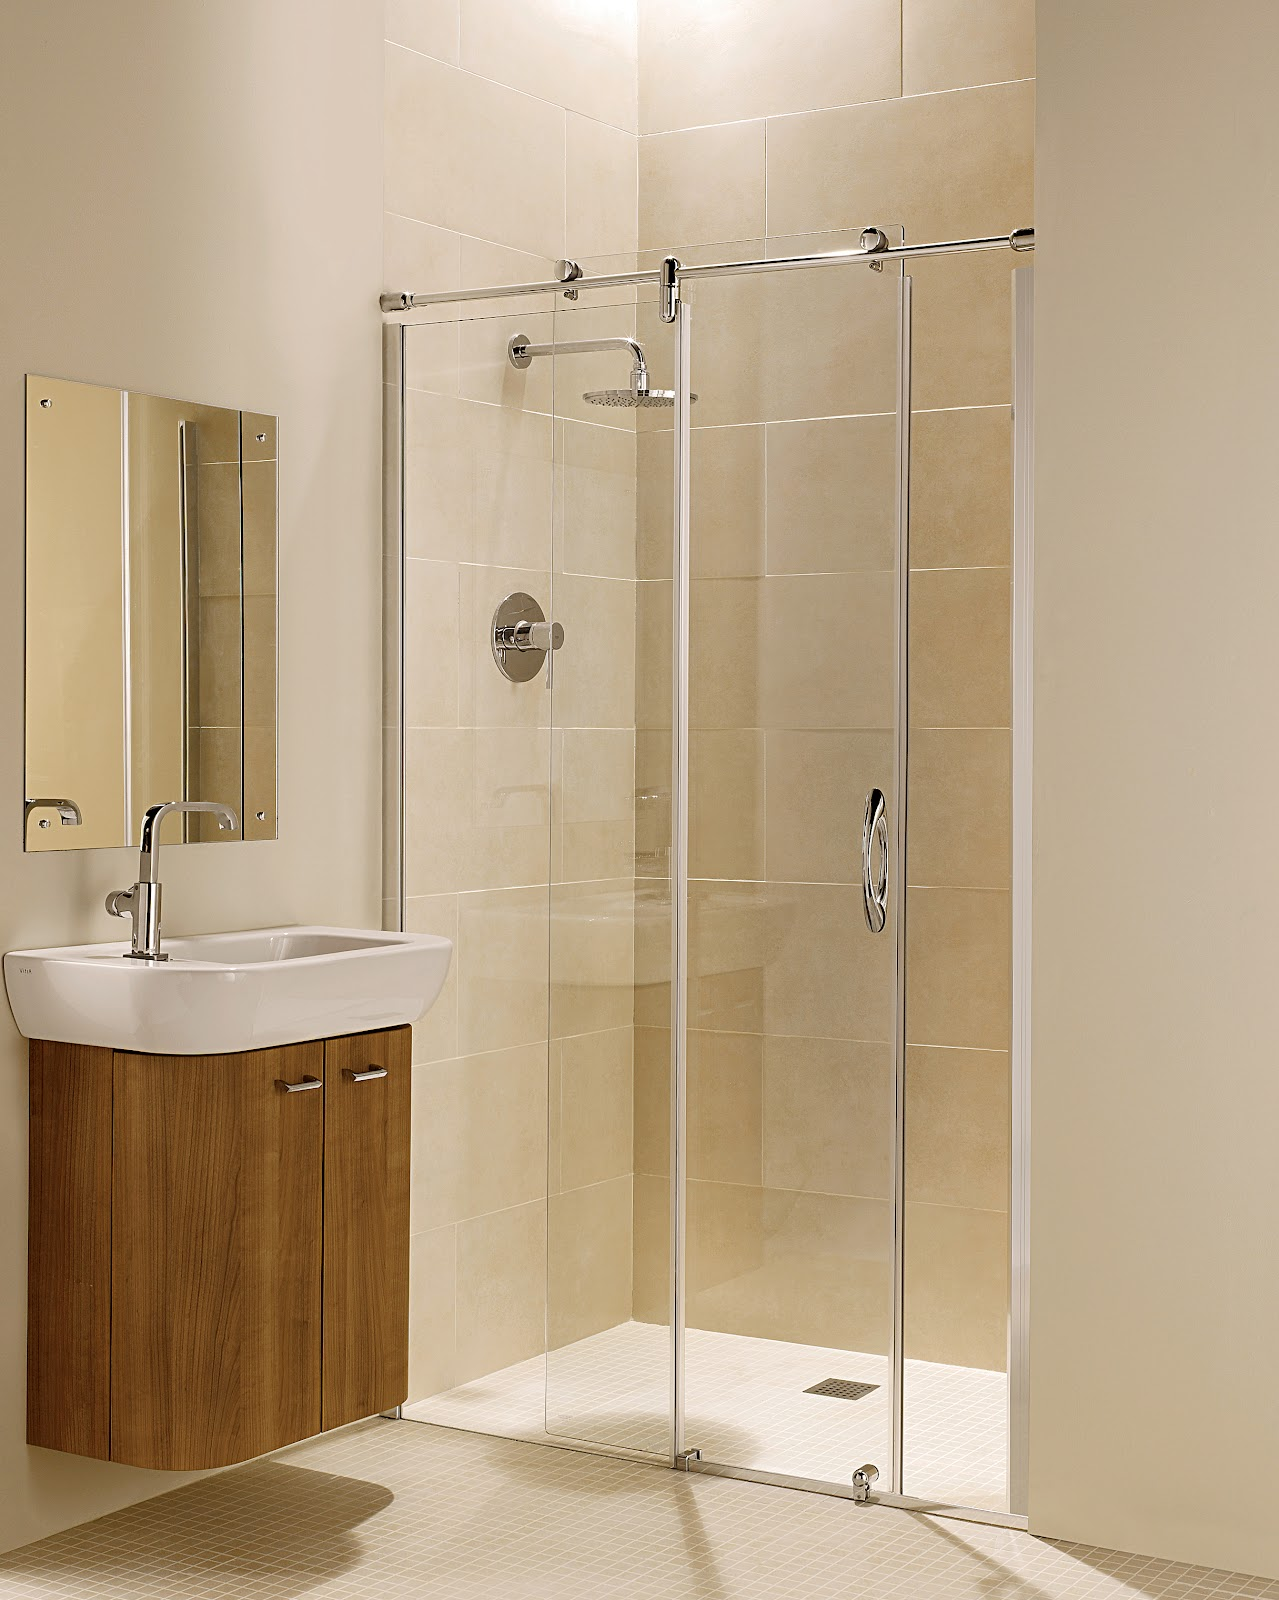 The wetroom specialst blog details on installing a Sliding glass shower doors